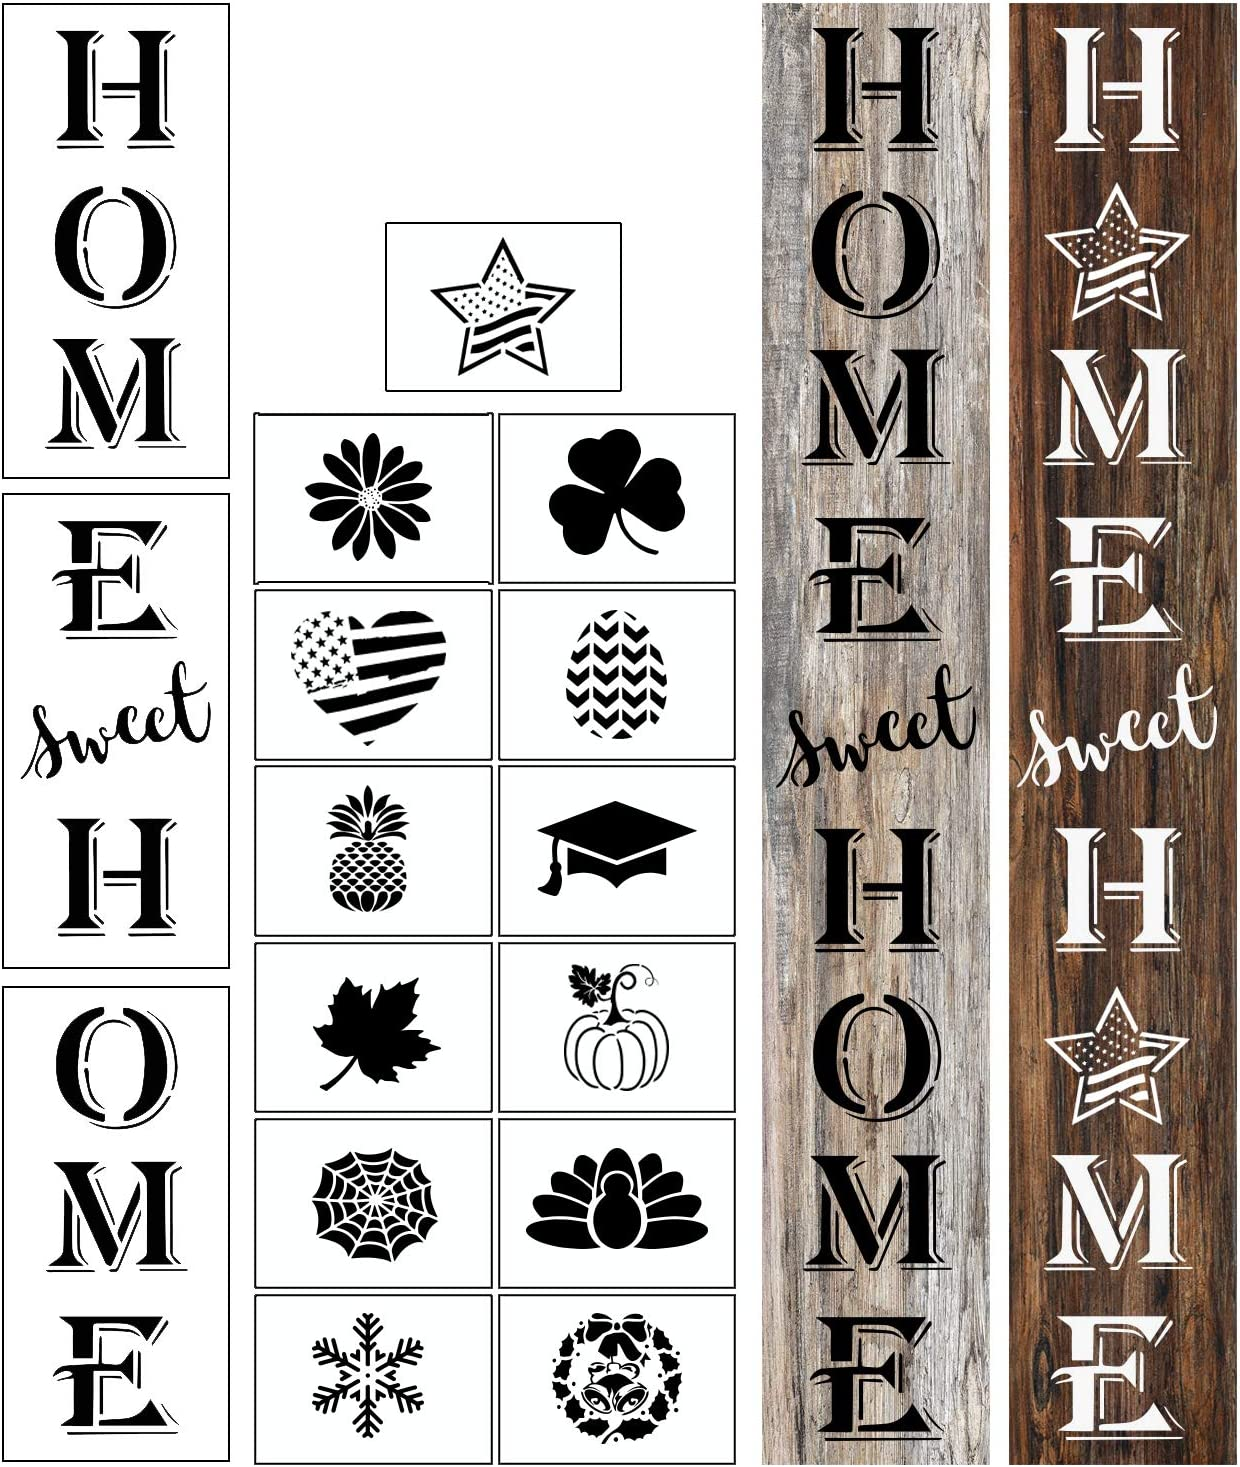 OCCdesign Home Sweet Home Sign Stencils Housewarming Templates New Home Decor for Porch Front Door of Home Hotle Store, Easter, 4th of July, Halloween, Thanksgiving, Christmas, Graduation Decor